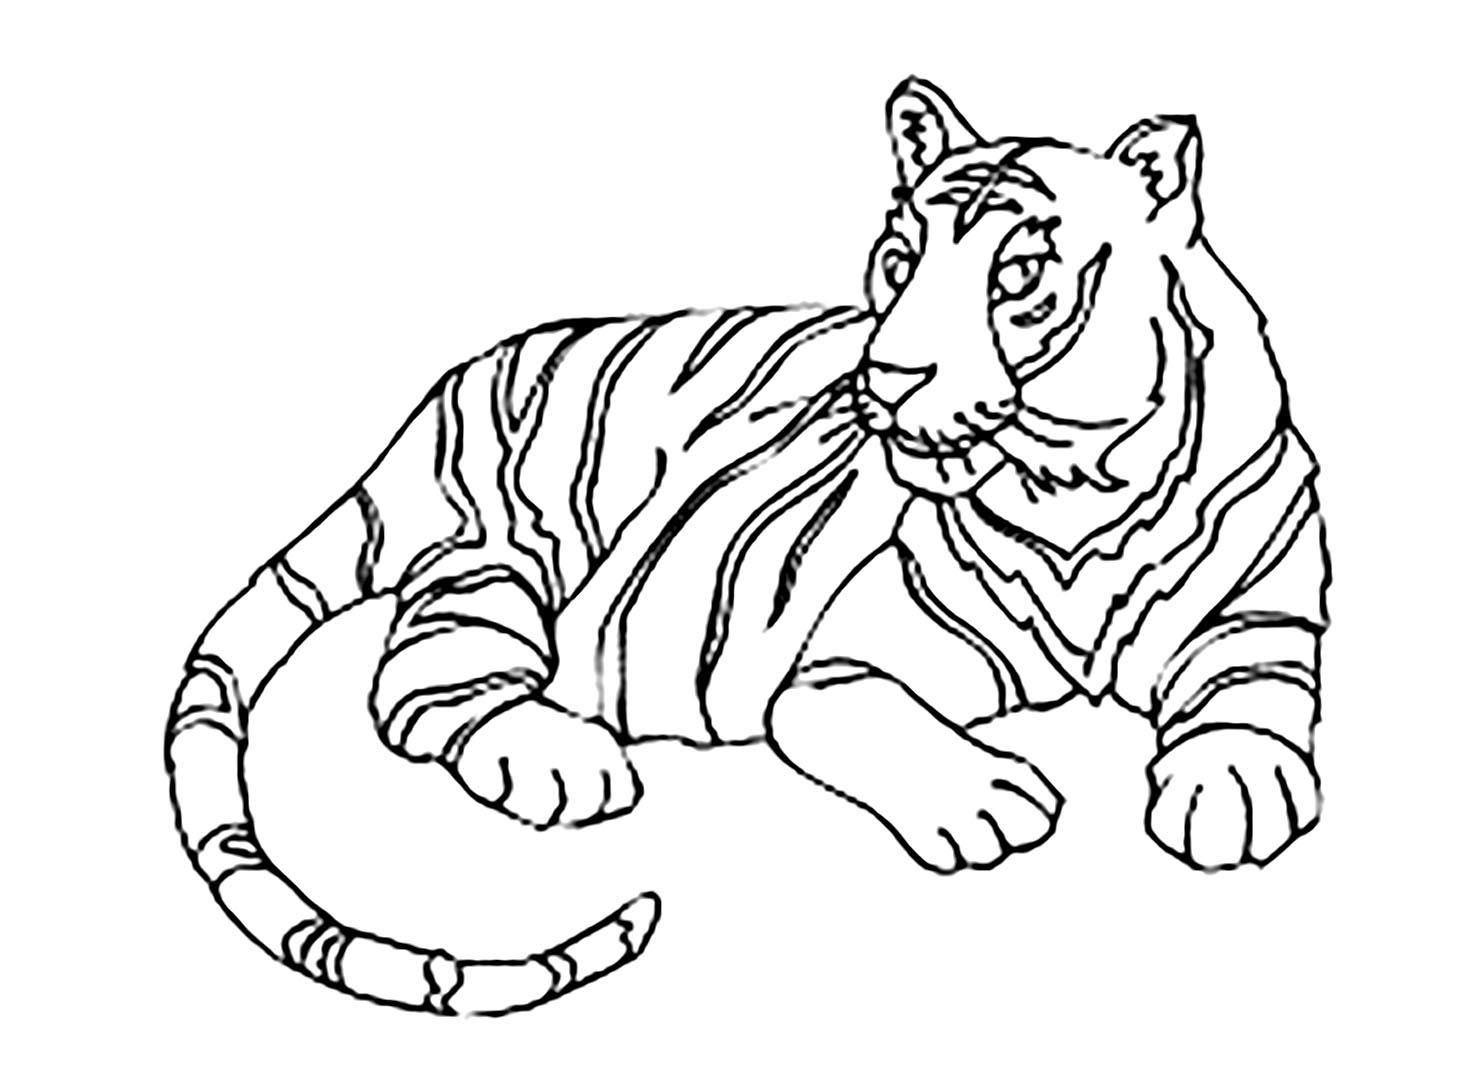 42 Coloring Page Tiger Animal Coloring Pages Shopkins Colouring Pages Coloring Pages